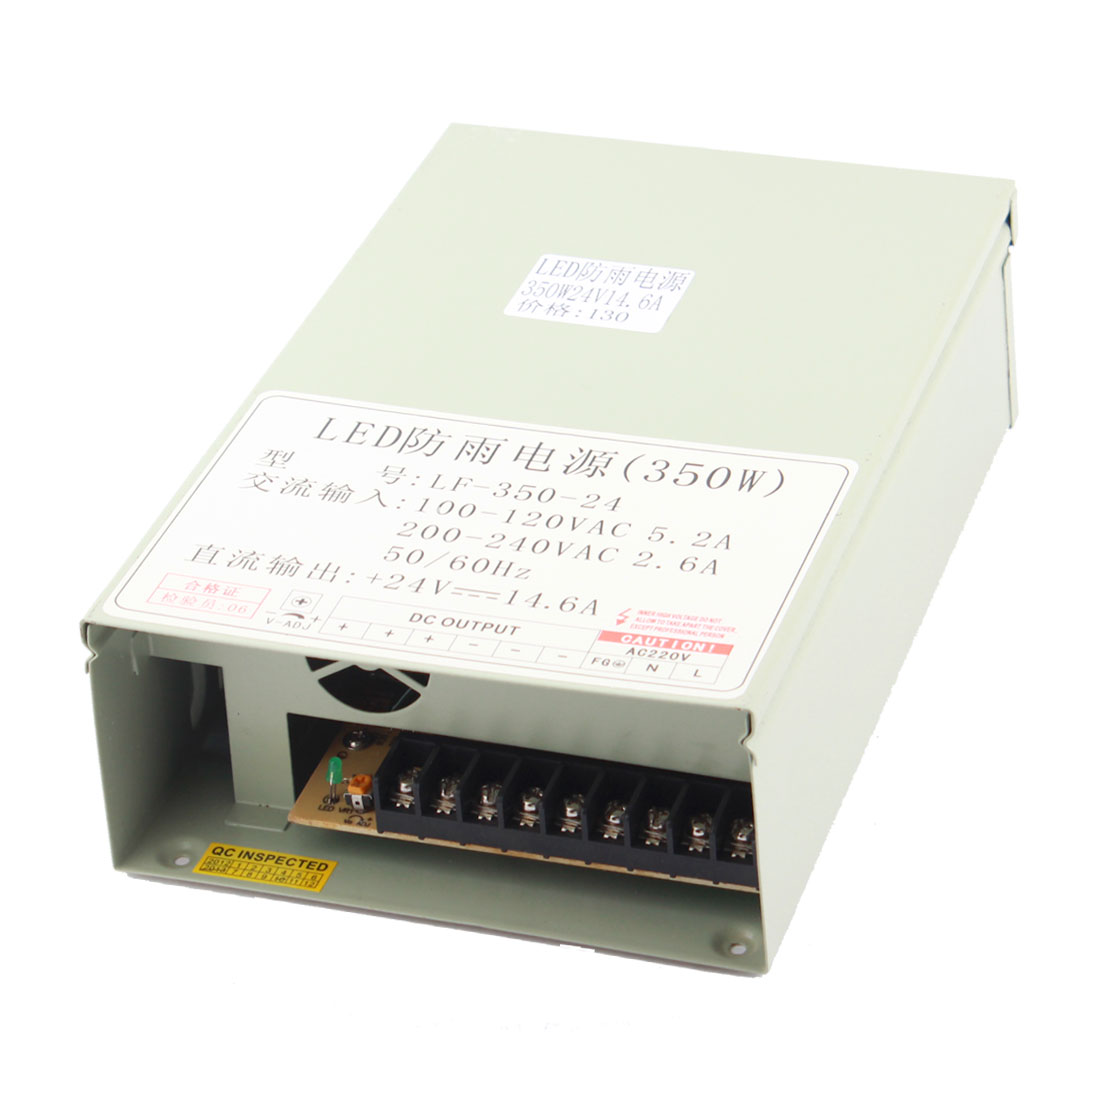 AC 100-120V to DC 24V 14.6A 350W Switching Power Supply for LED Strip Light